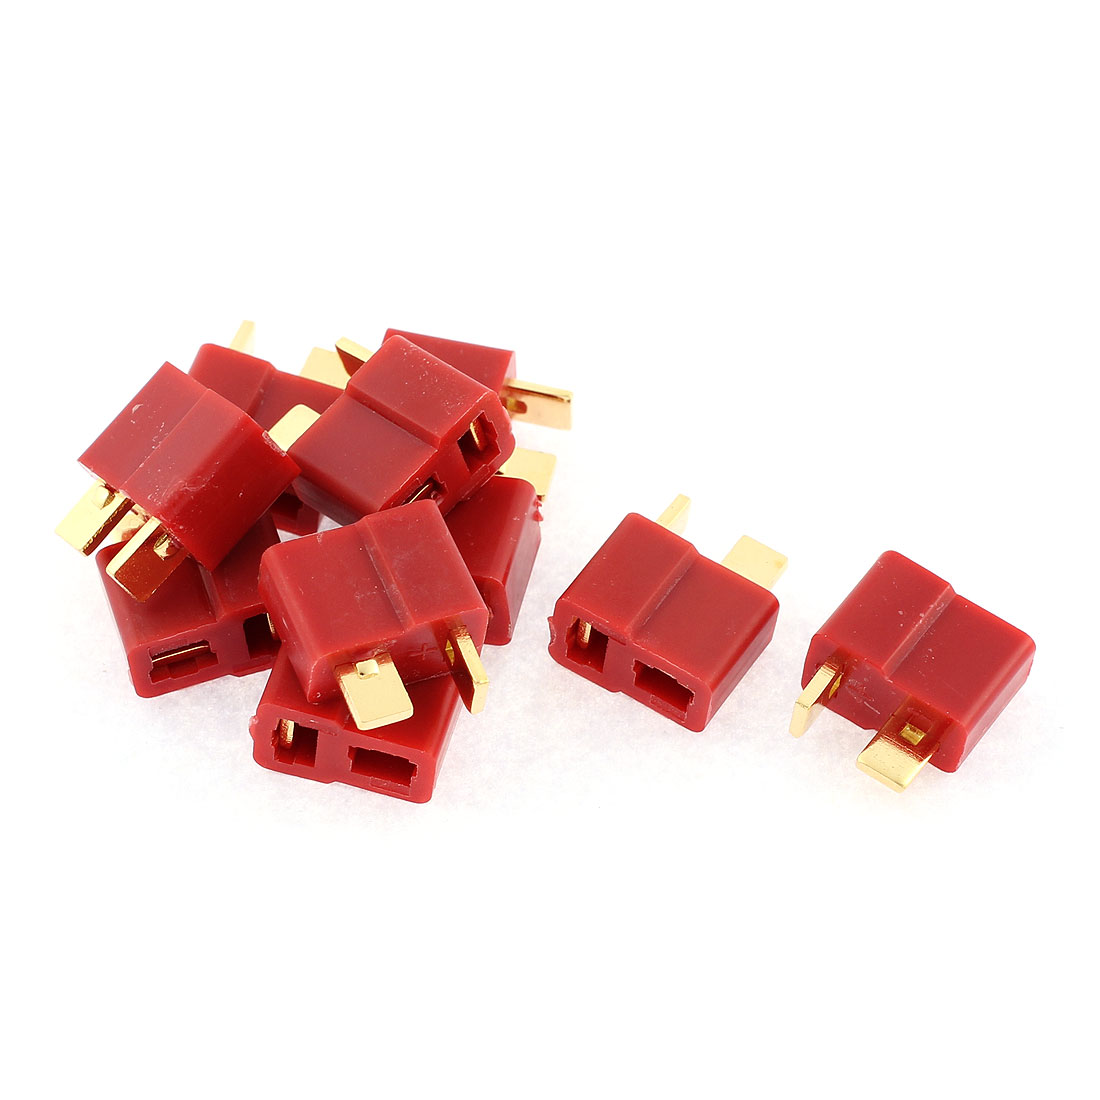 10 Pcs T Female Connectors for RC Airplane Aircraft LiPo Battery ESC